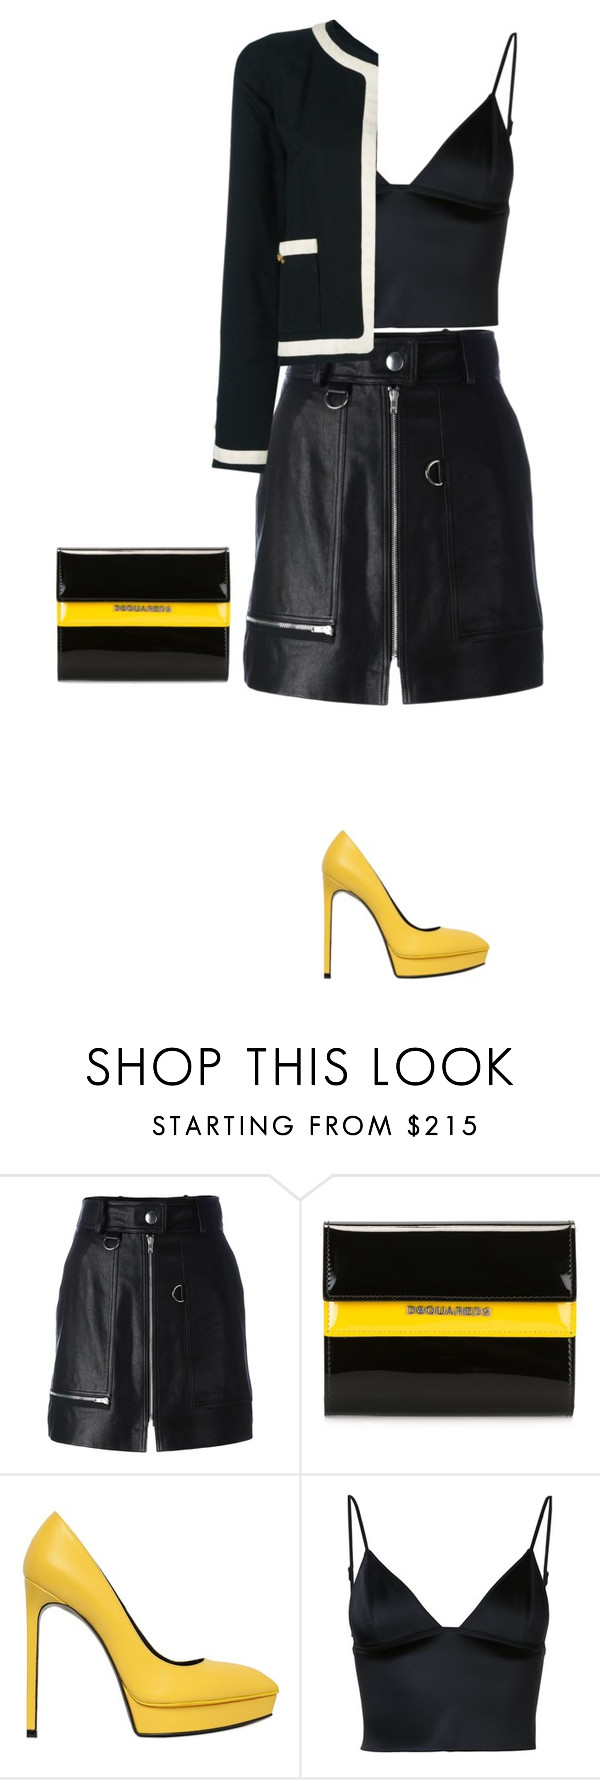 """""""Untitled #4806"""" by linda56draco ❤ liked on Polyvore featuring Isabel Marant, Dsquared2, Yves Saint Laurent, T By Alexander Wang and Chanel"""